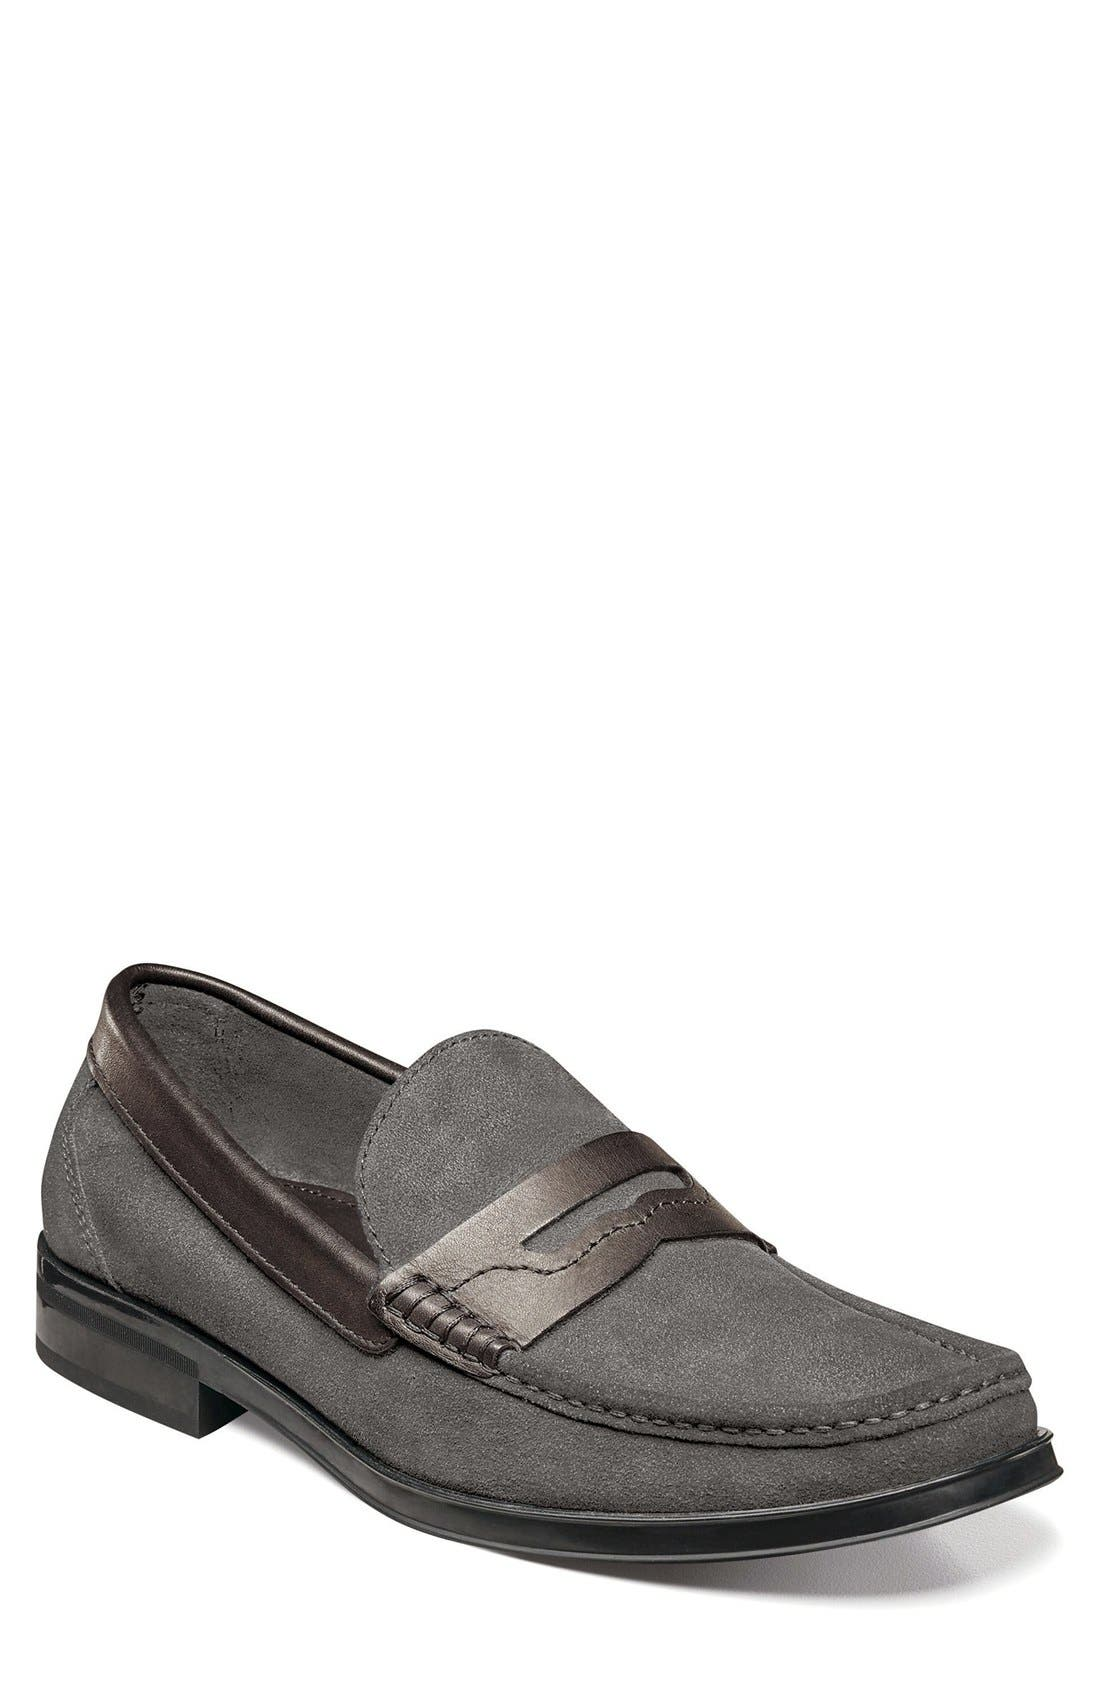 Westbrook Penny Loafer,                             Main thumbnail 2, color,